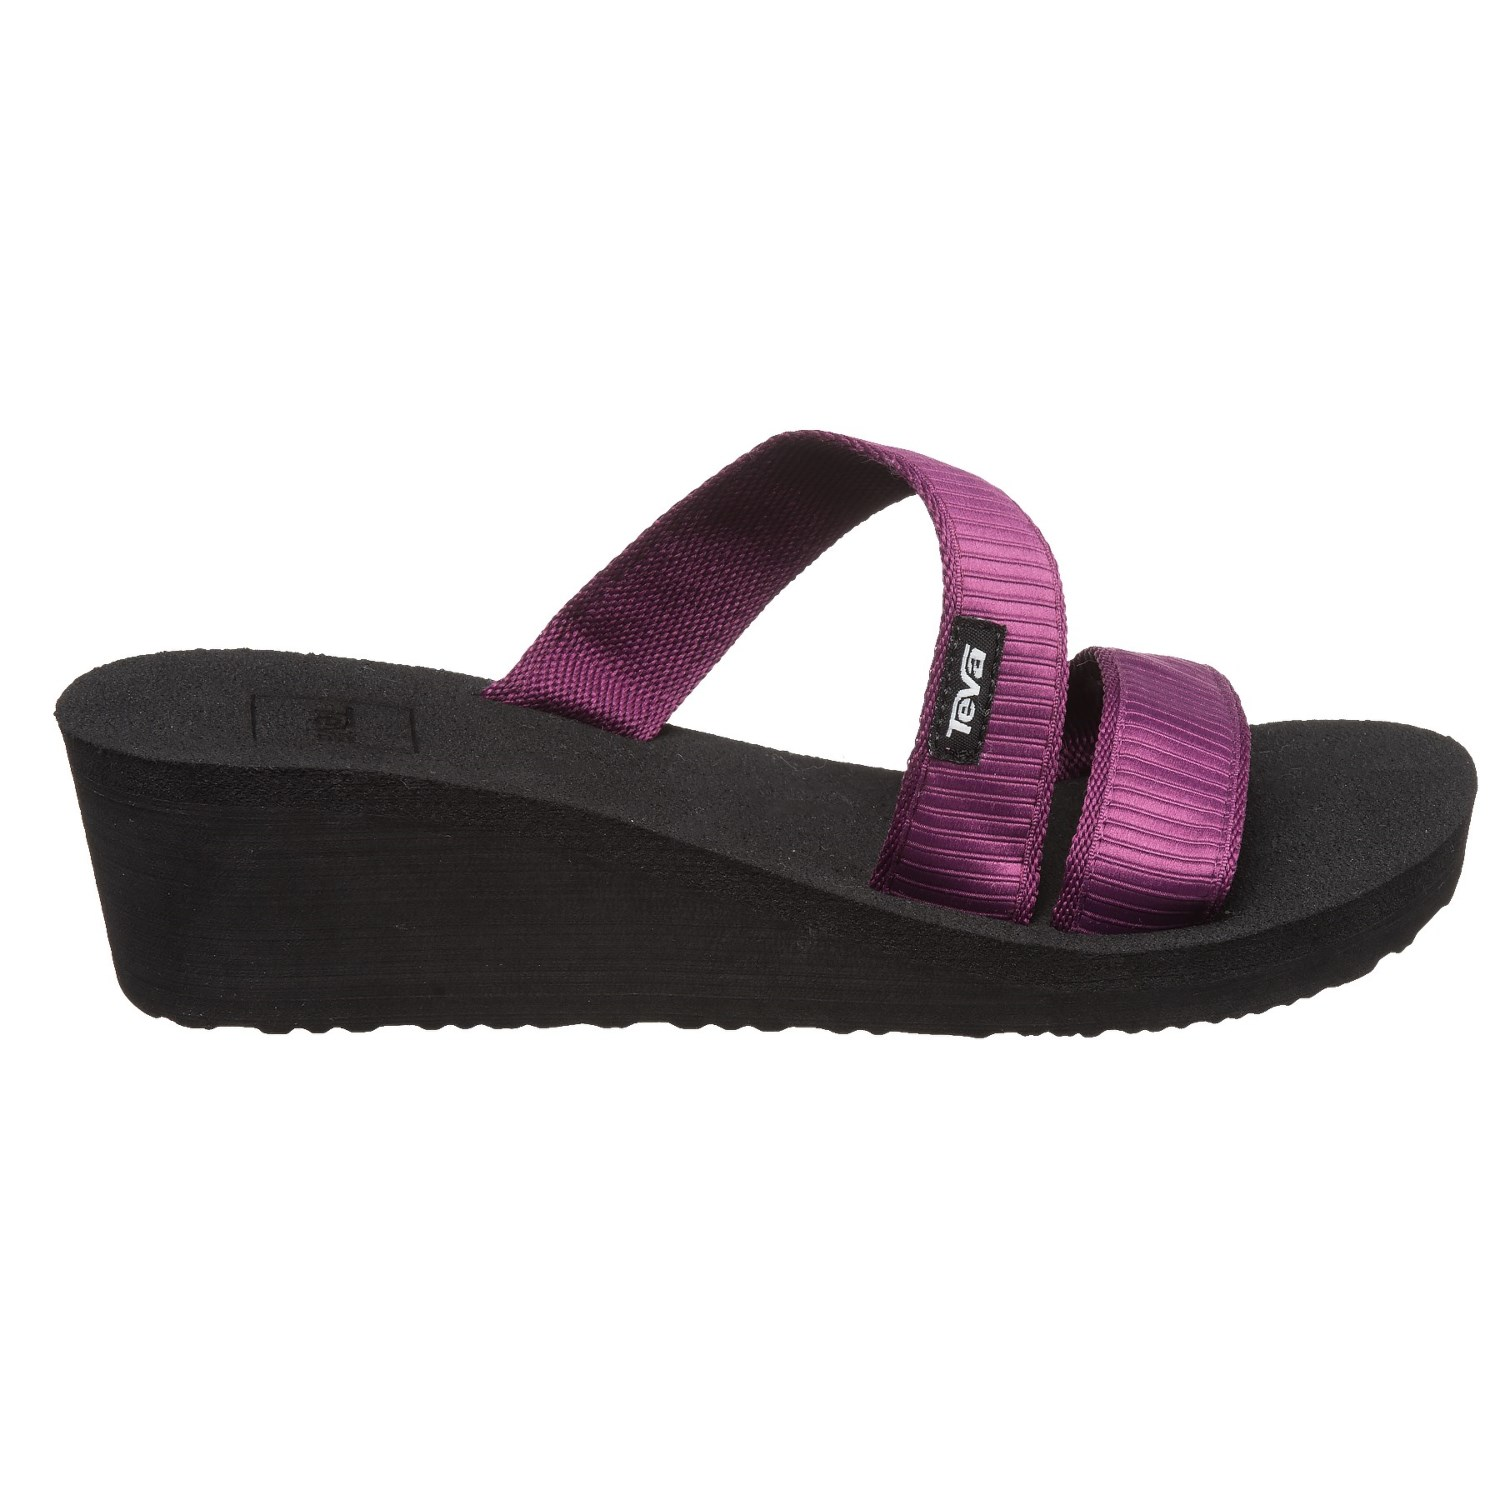 Teva Mush® Mandalyn Wedge Loma Sandals (For Women) - Save 50% 6da8ebff1c7f